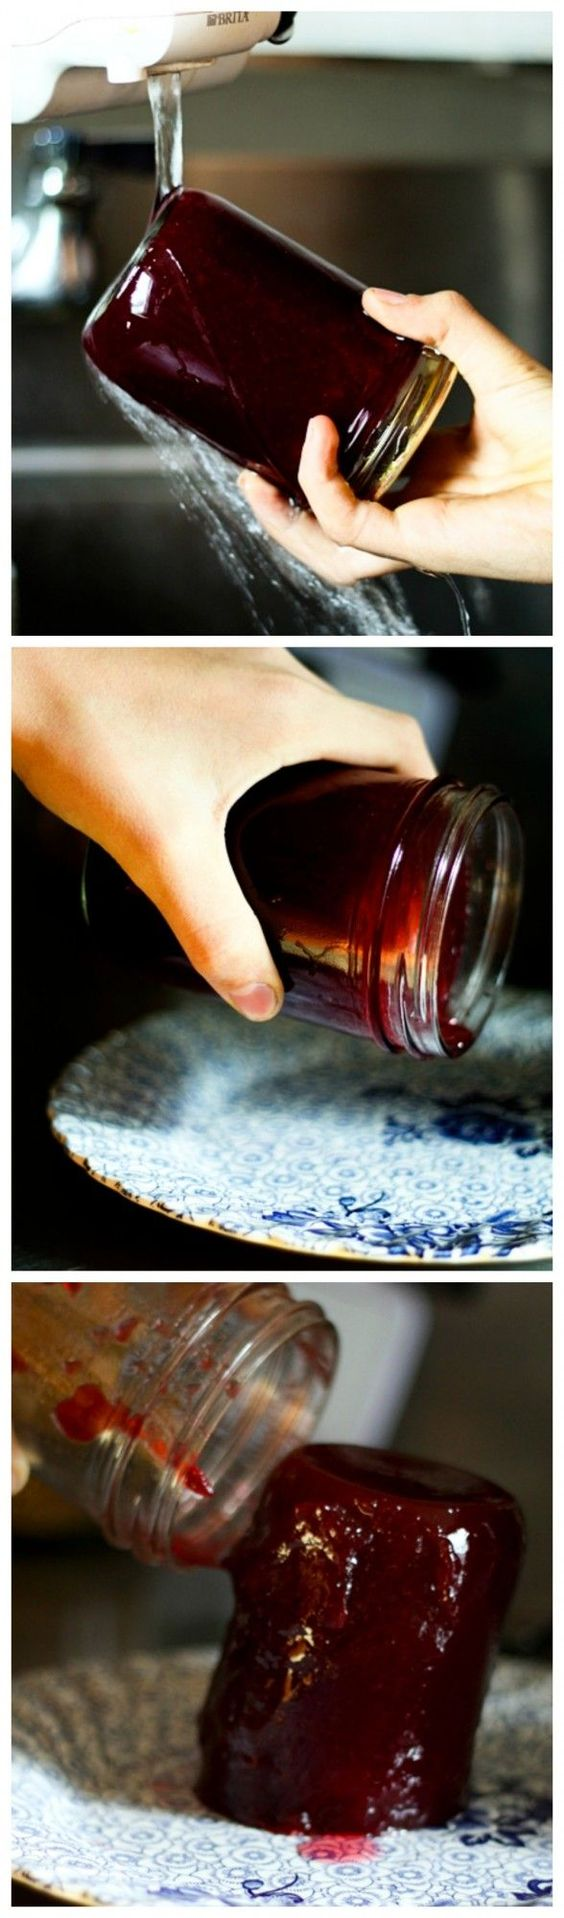 How to Make Homemade Jellied Cranberry Sauce ~ Delicious, nutritious homemade Jellied Cranberry Sauce with a hint of orange is just what your cranberry sauce lovers want at the Thanksgiving table!